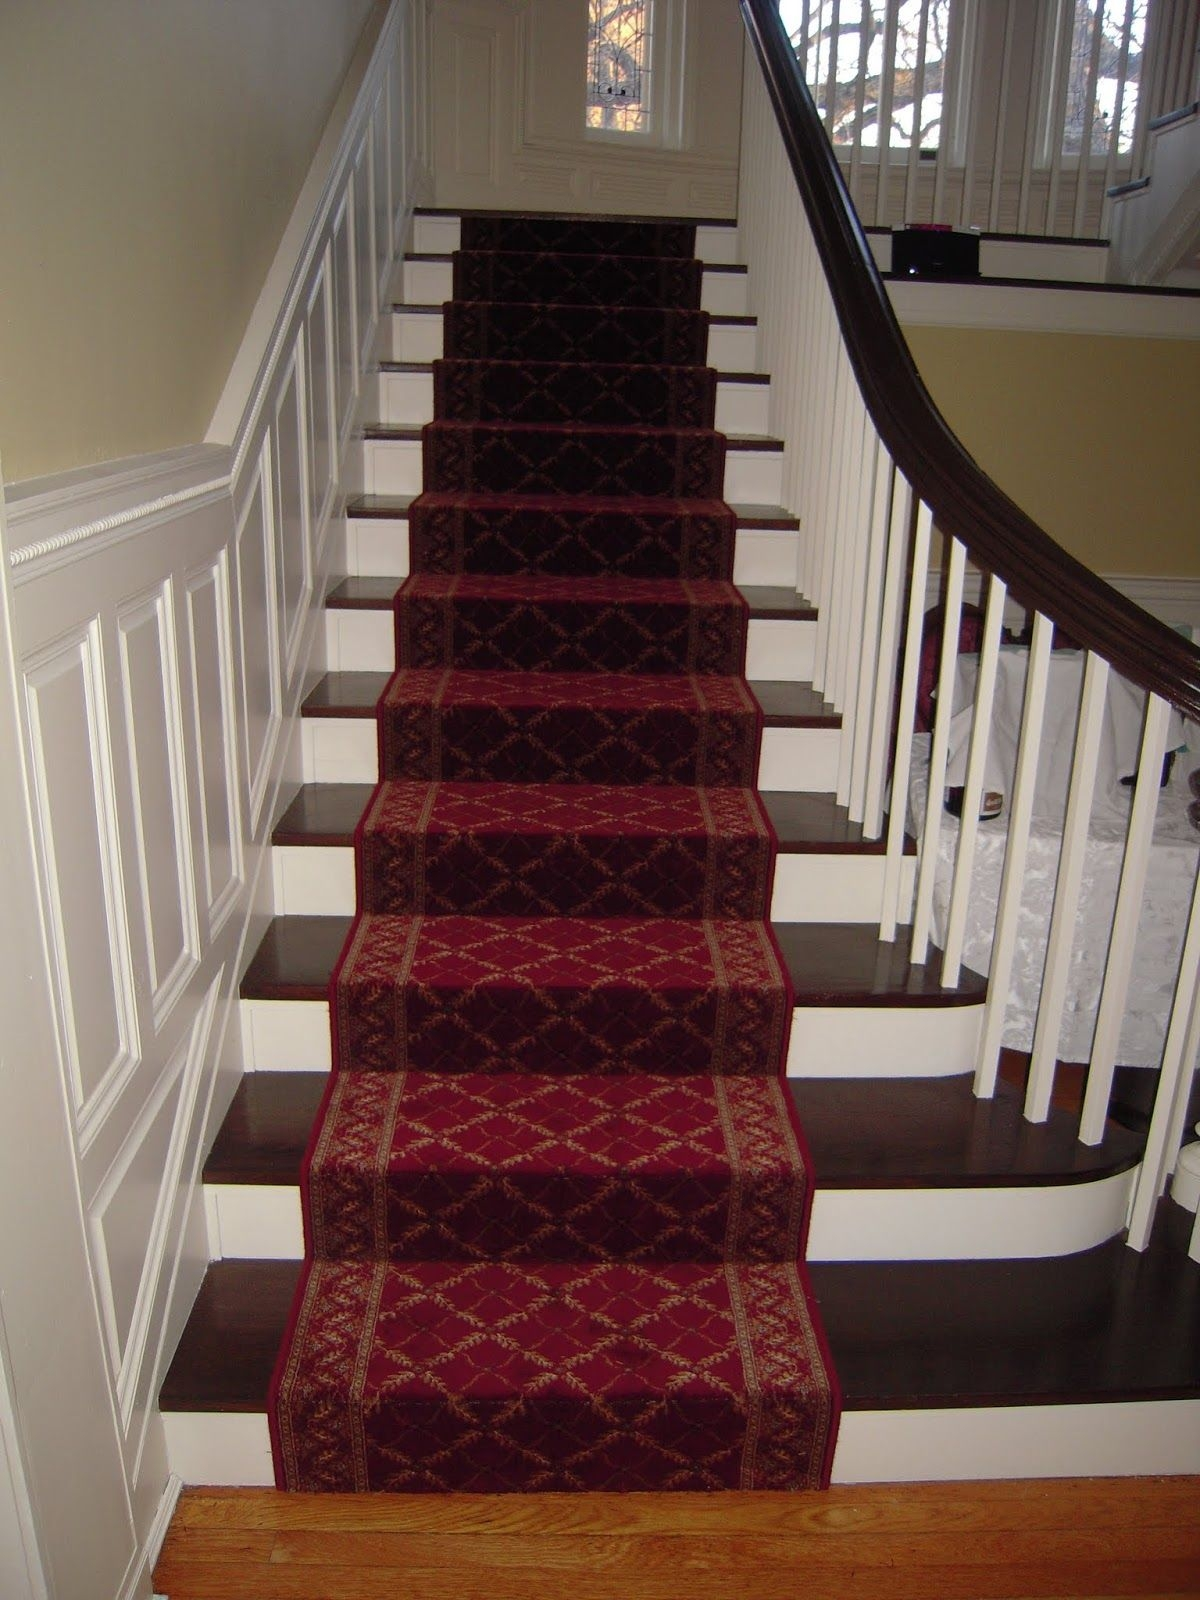 Flooring Pretty Stair Treads Carpet For Stair Decoration Idea Within Stair Tread Rug Holders (View 10 of 20)